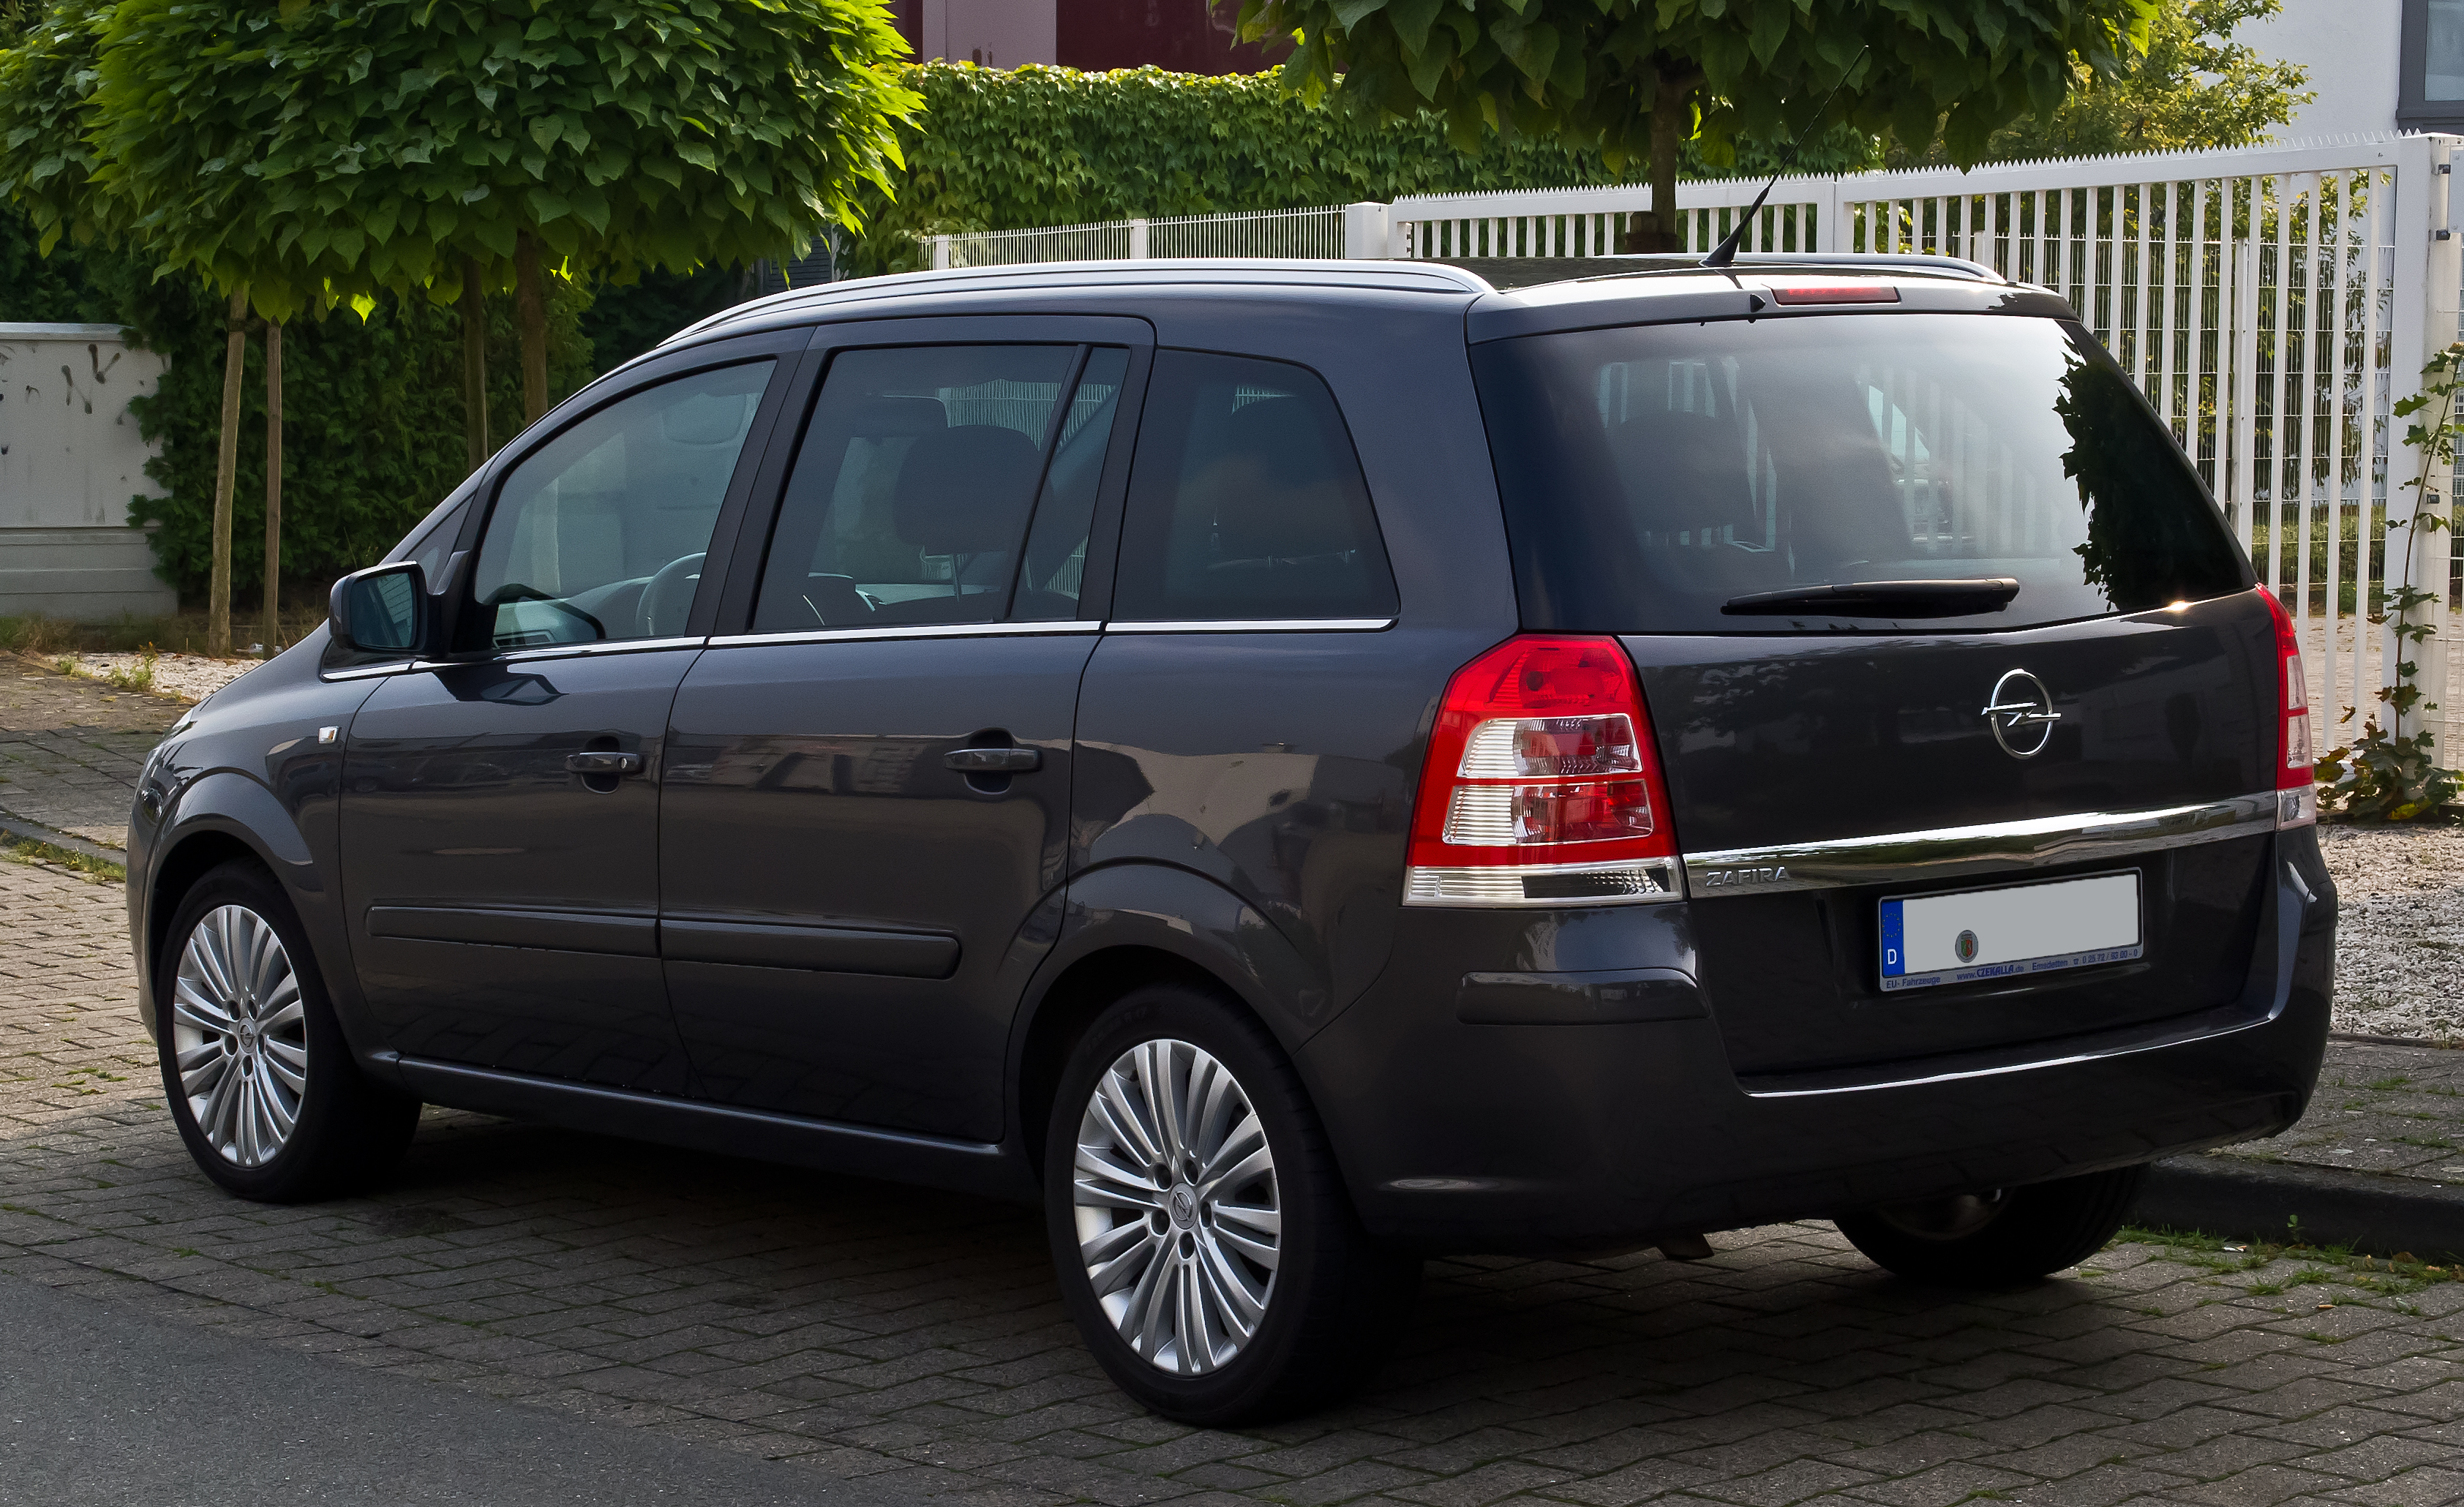 file opel zafira b facelift heckansicht 7 september 2013 m wikimedia commons. Black Bedroom Furniture Sets. Home Design Ideas